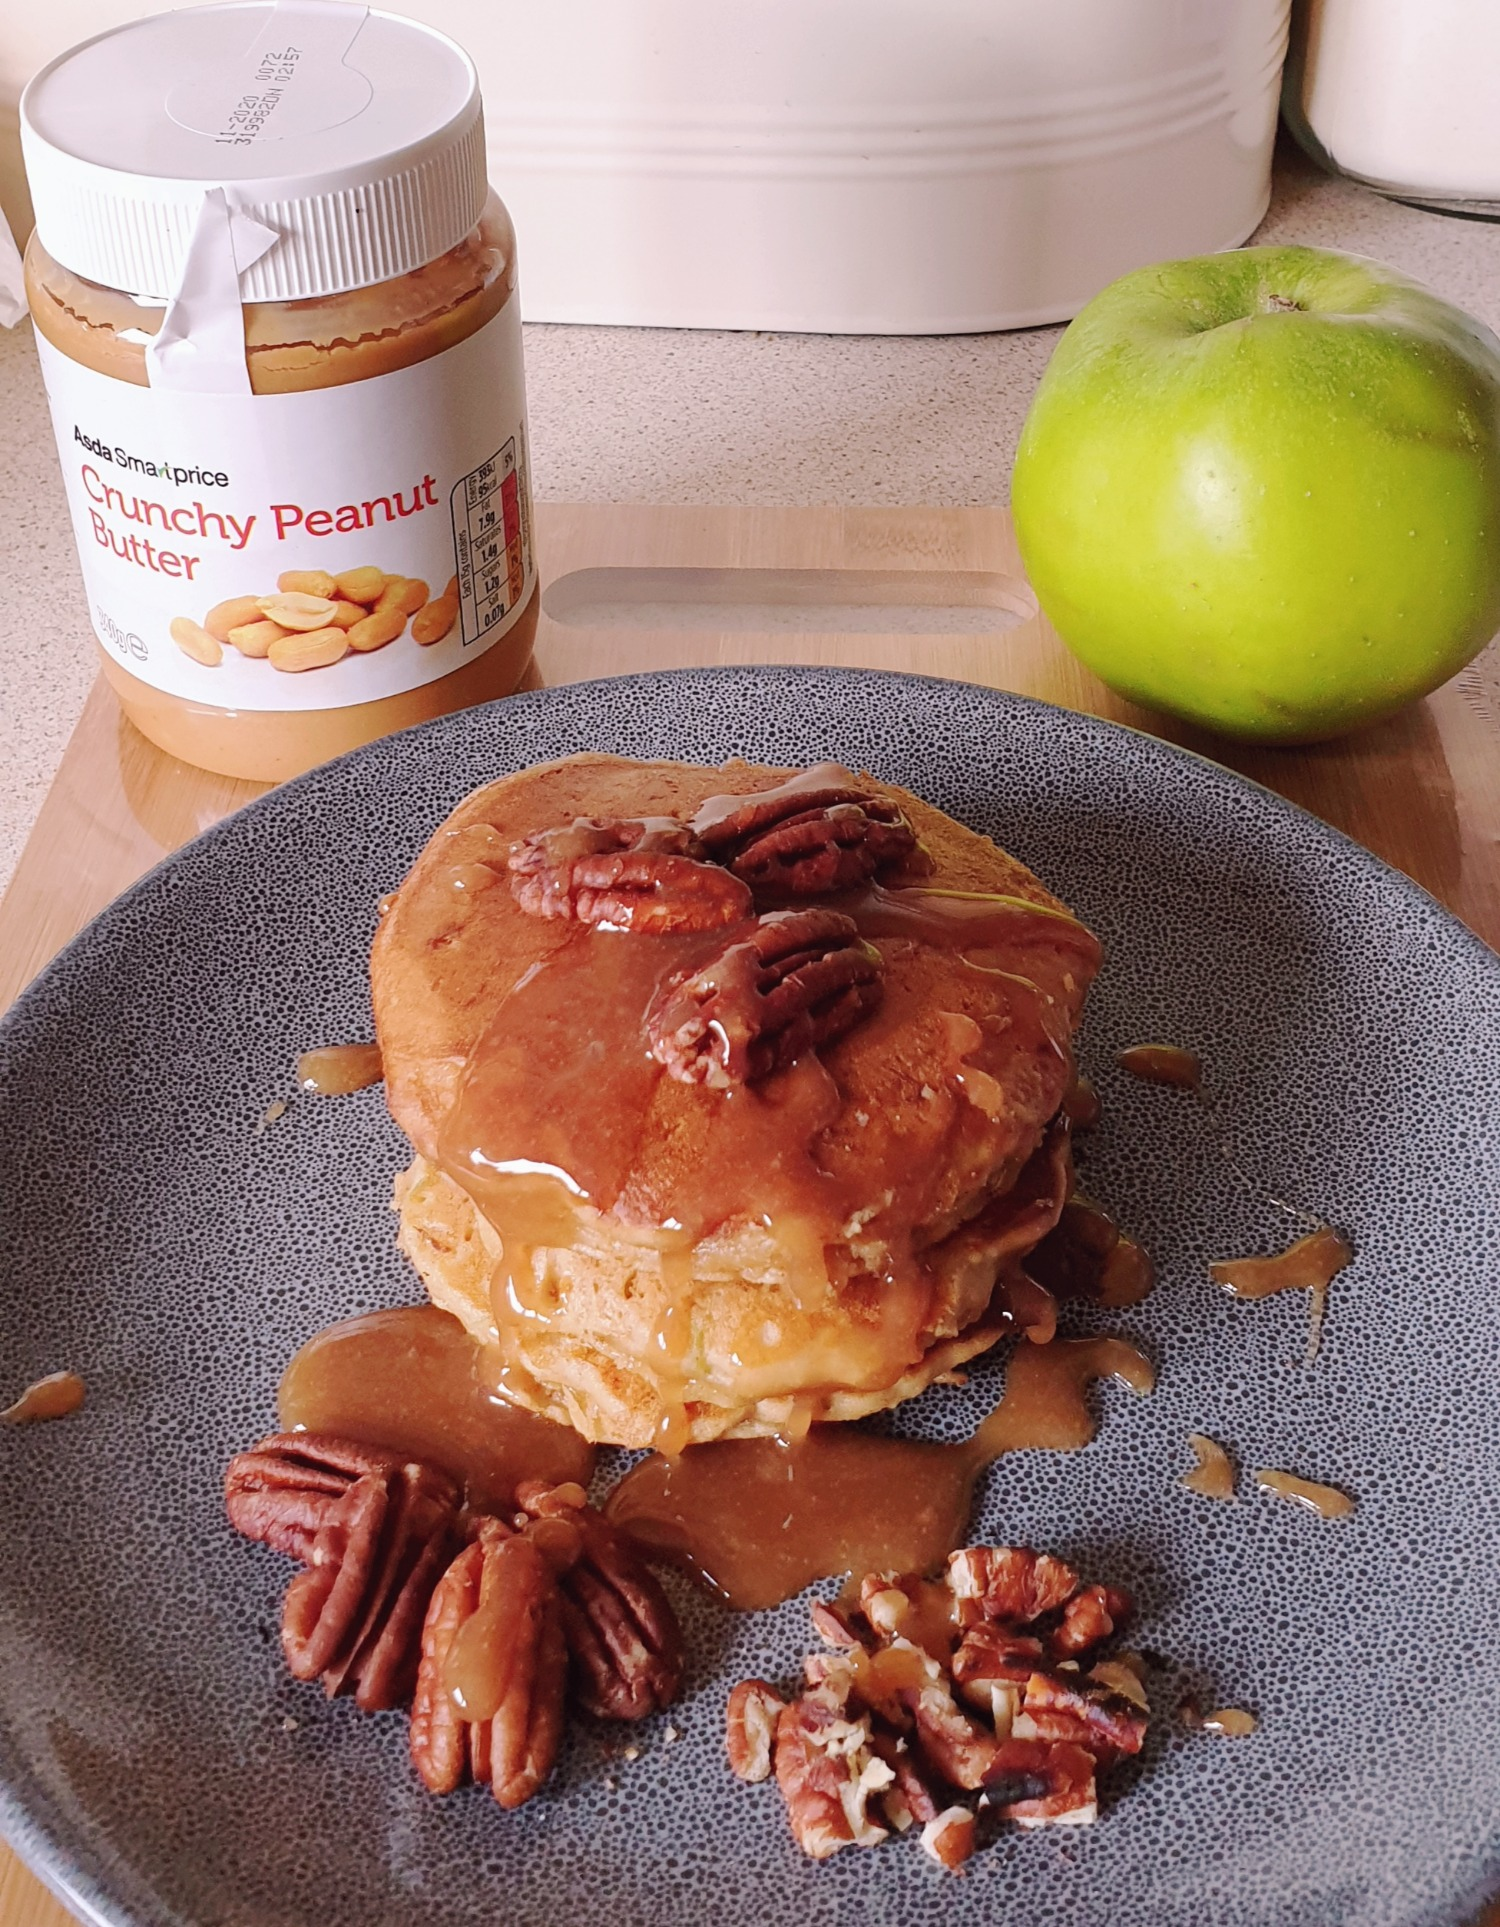 Apple and Peanut butter Pancakes